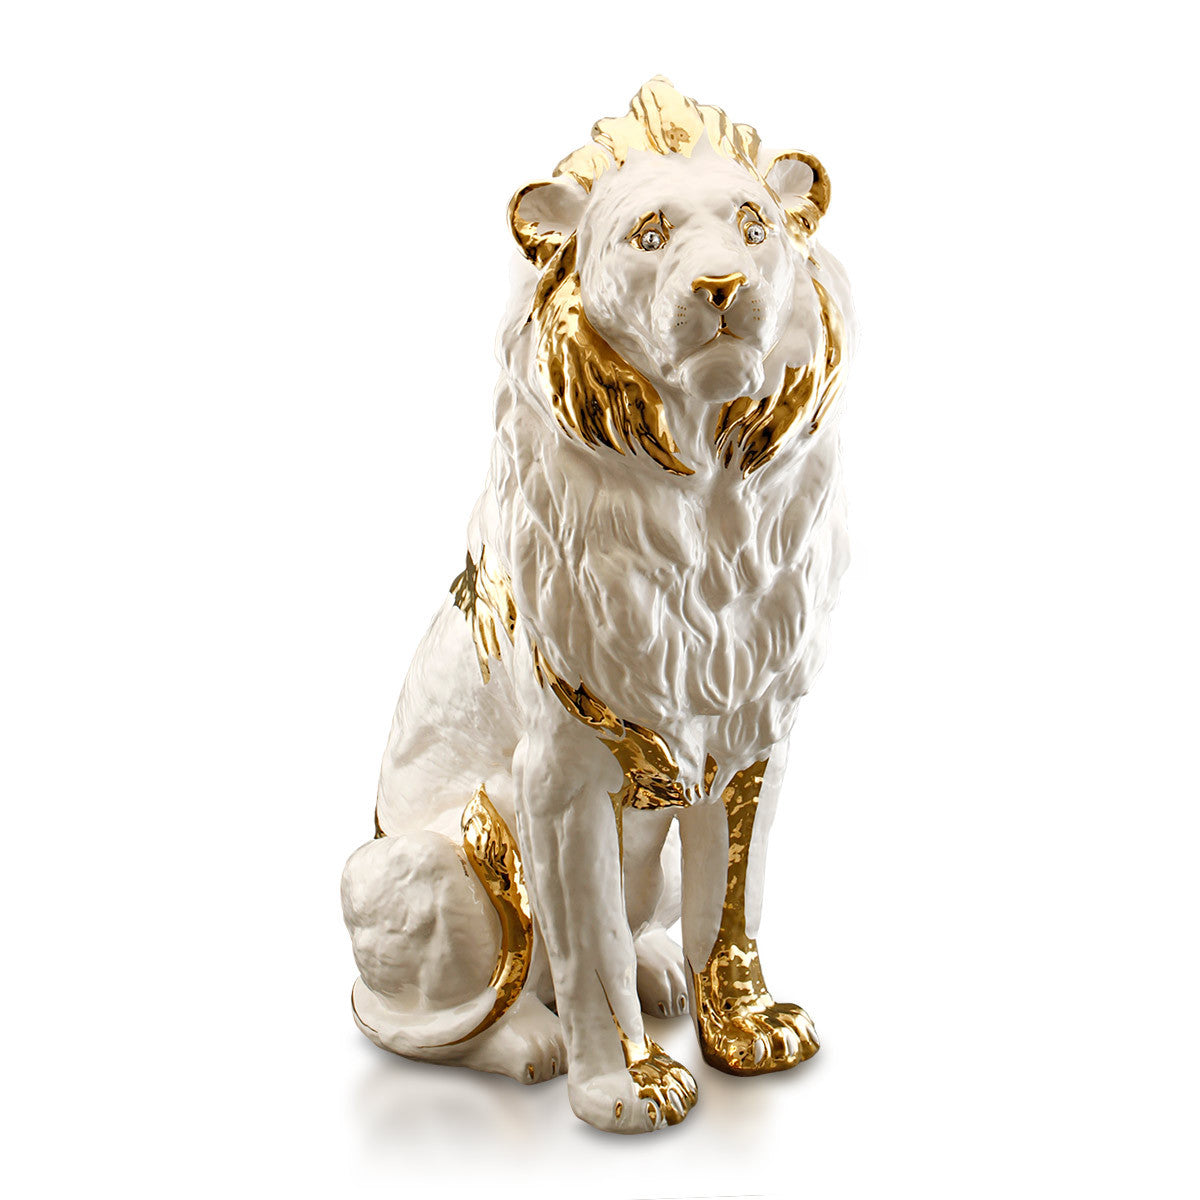 Ceramic big lion statue with gold accents